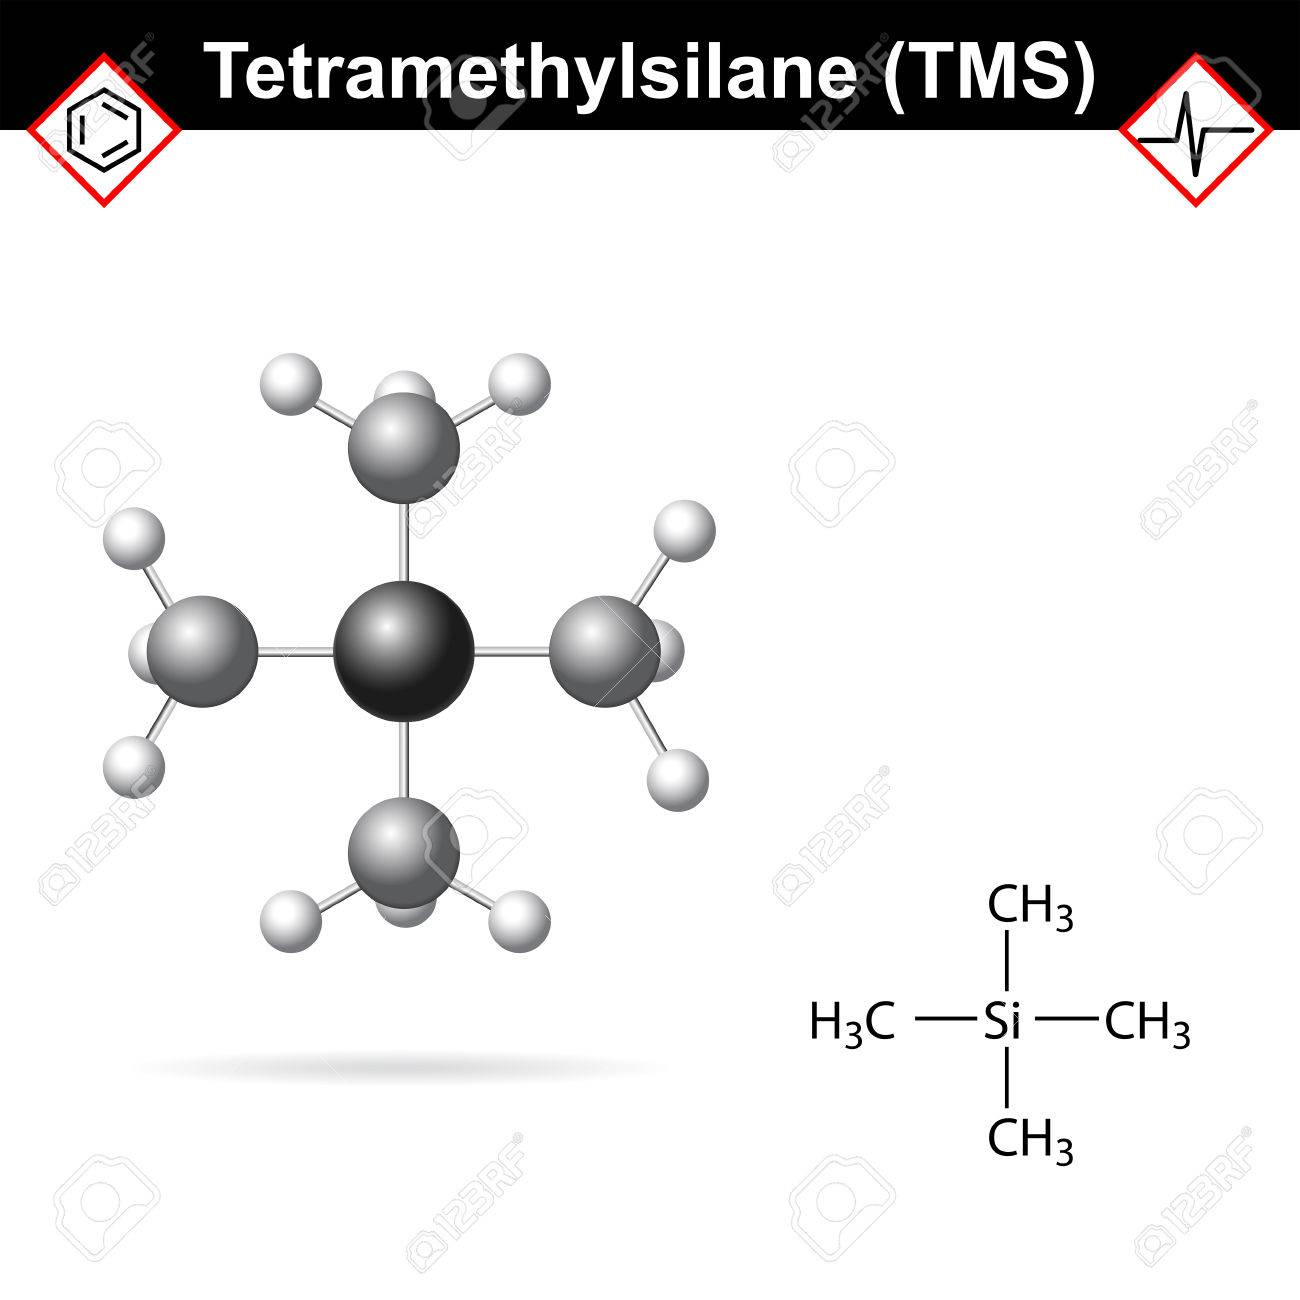 Tetramethylsilane - TMS structure, internal standard for proton magnetic resonance analysis, 2d and 3d illustration - 60321946